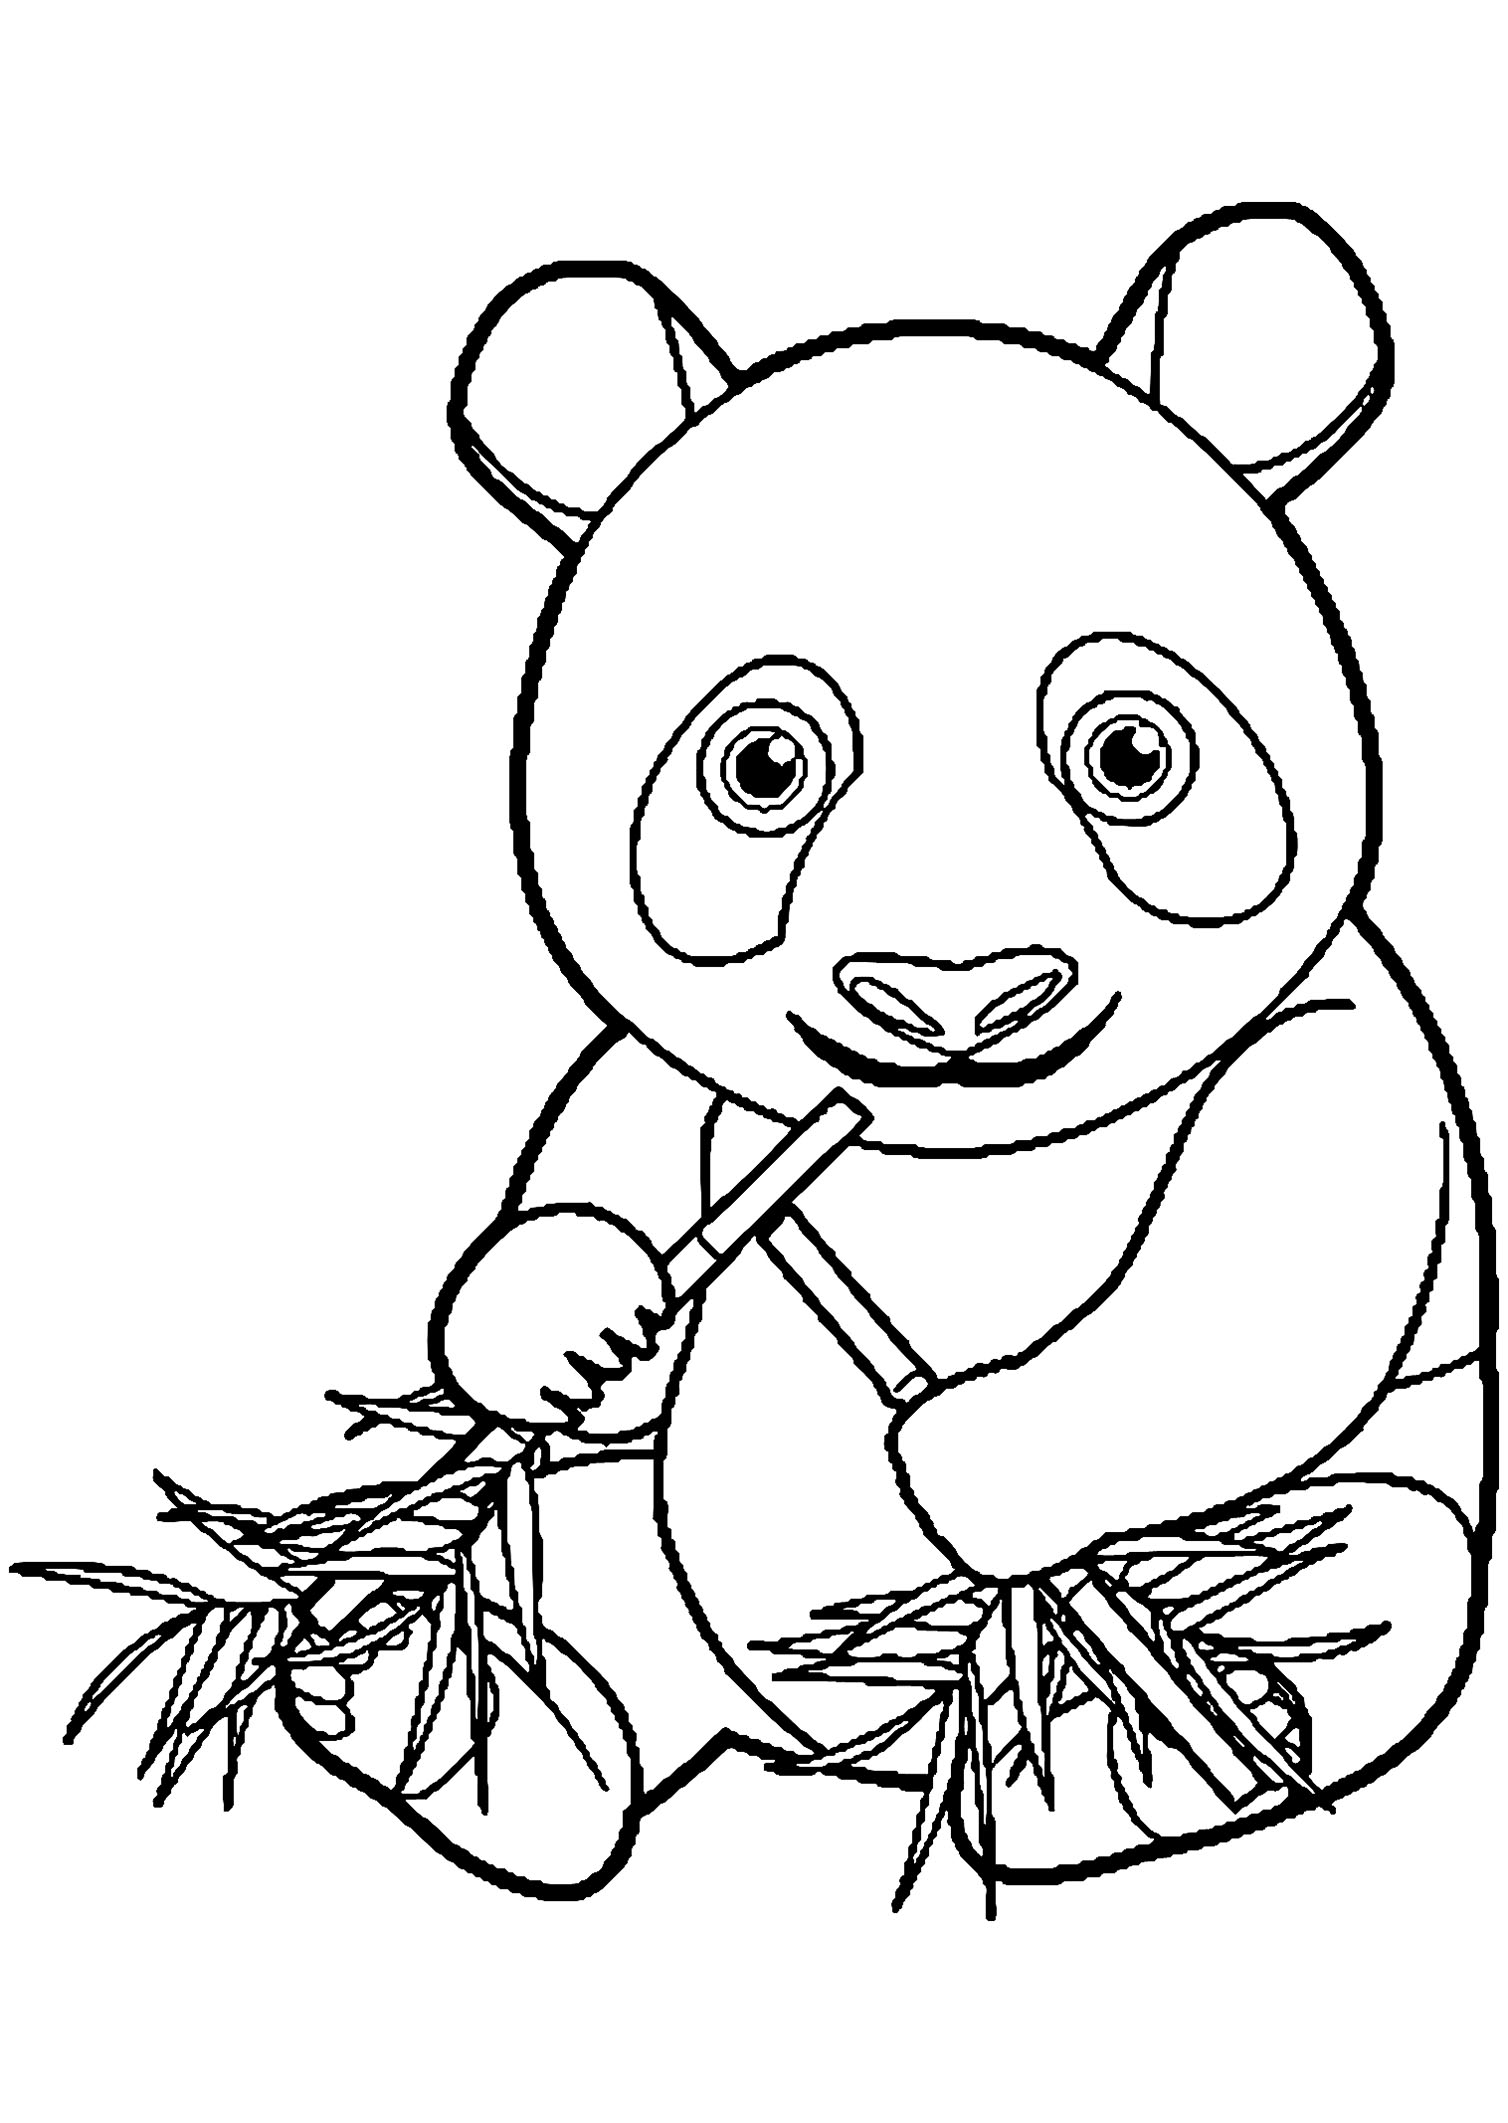 Pandas coloring page to print and color for free